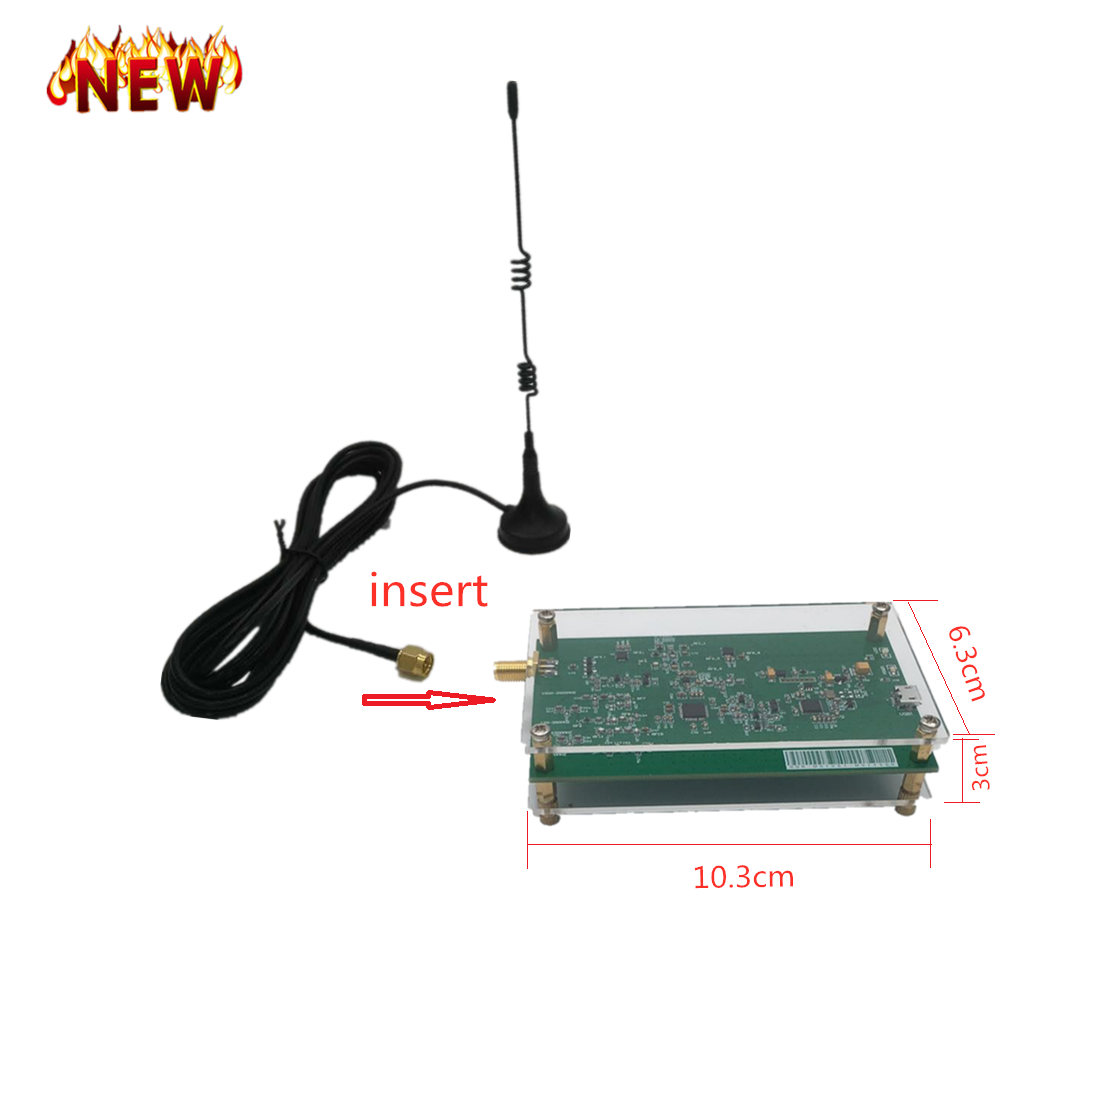 10KHz-2GHz Full-function 12-bit SDR Receiver SDRPLAY RSP1 RSP2 RTL-SDR